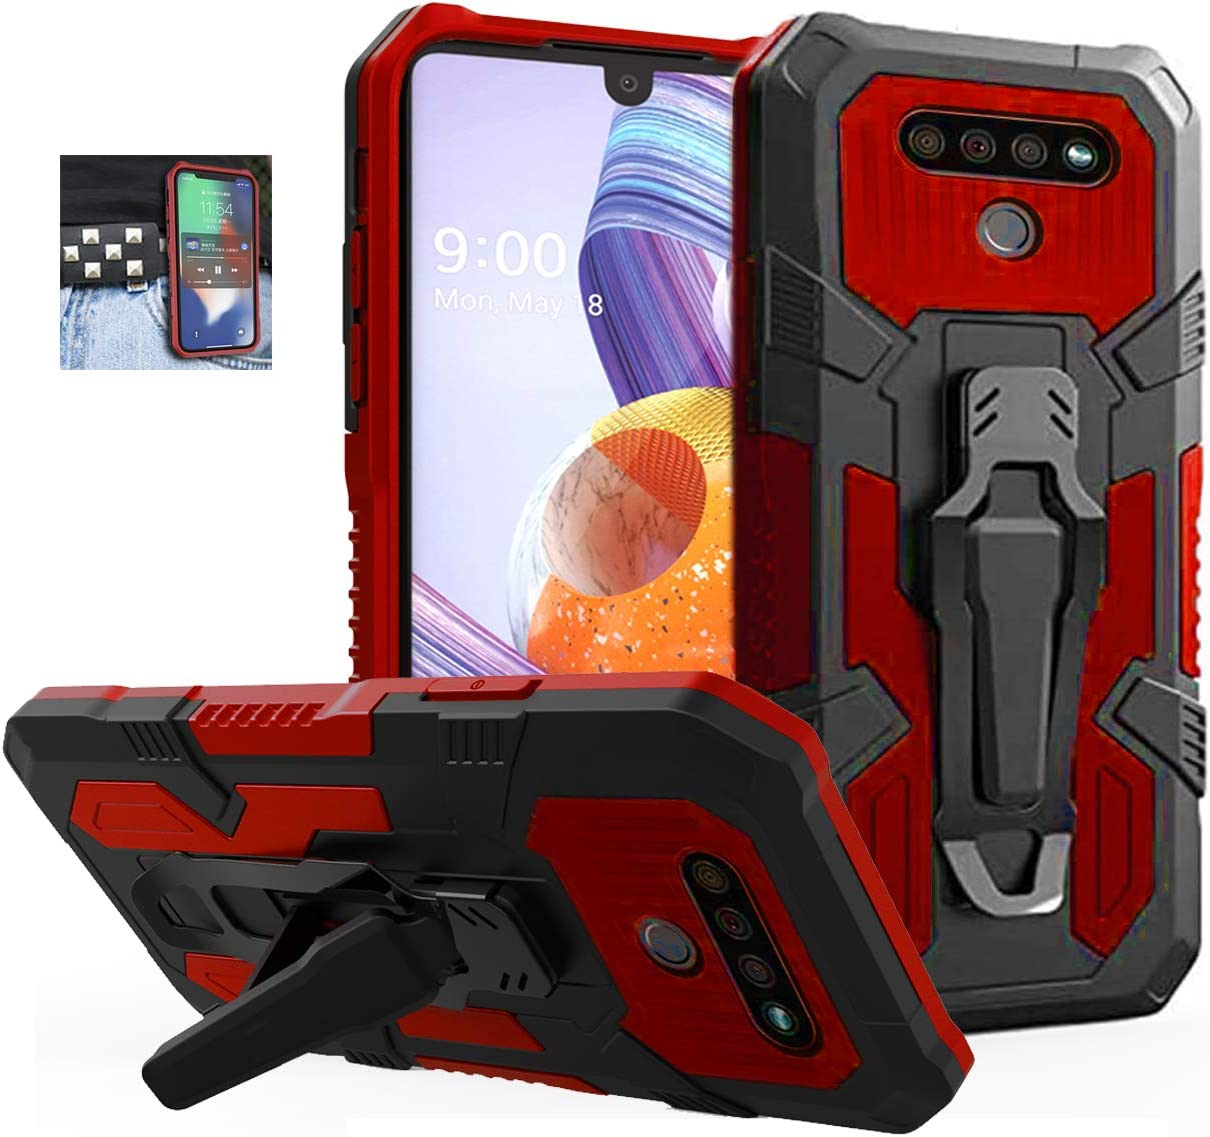 JoHenQii for Compatible Phone Case LG Stylo 6, LG K71 Case,Military Grade Protective Phone Case with Belt Clip and Kickstand for LG Stylo 6 (Red)